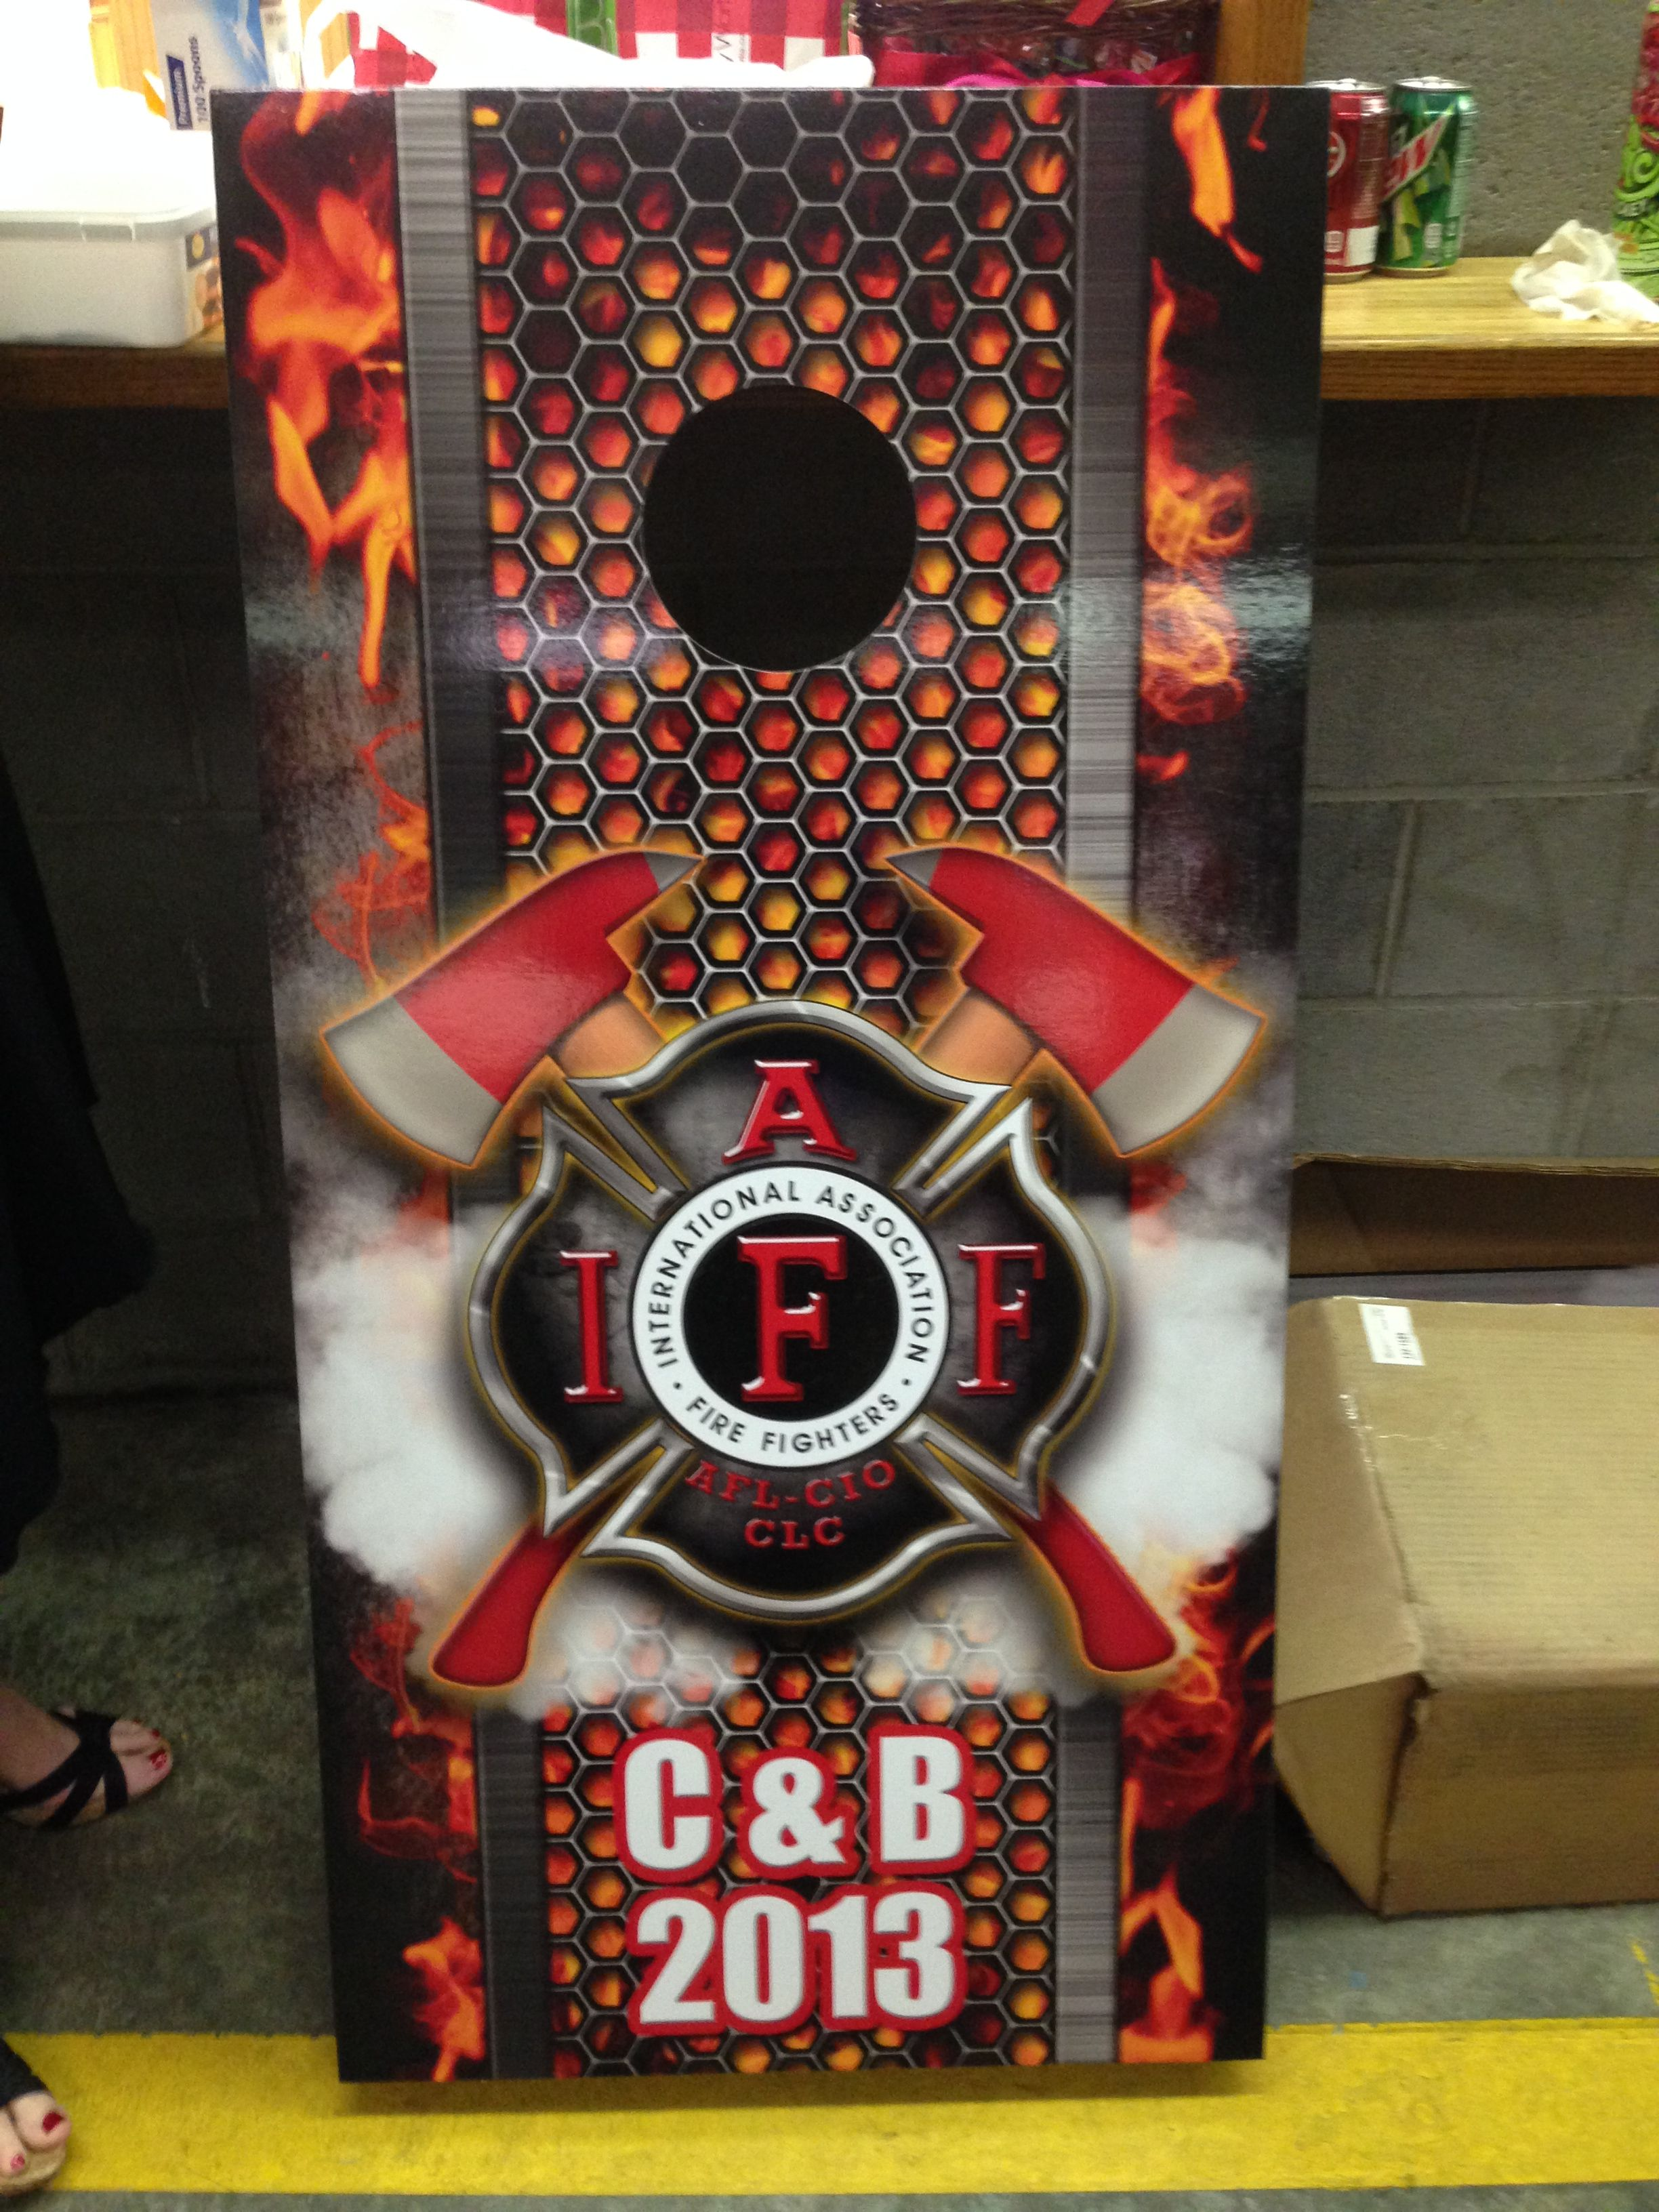 One Of The Ts For The Fire Fighter It Was So Cool